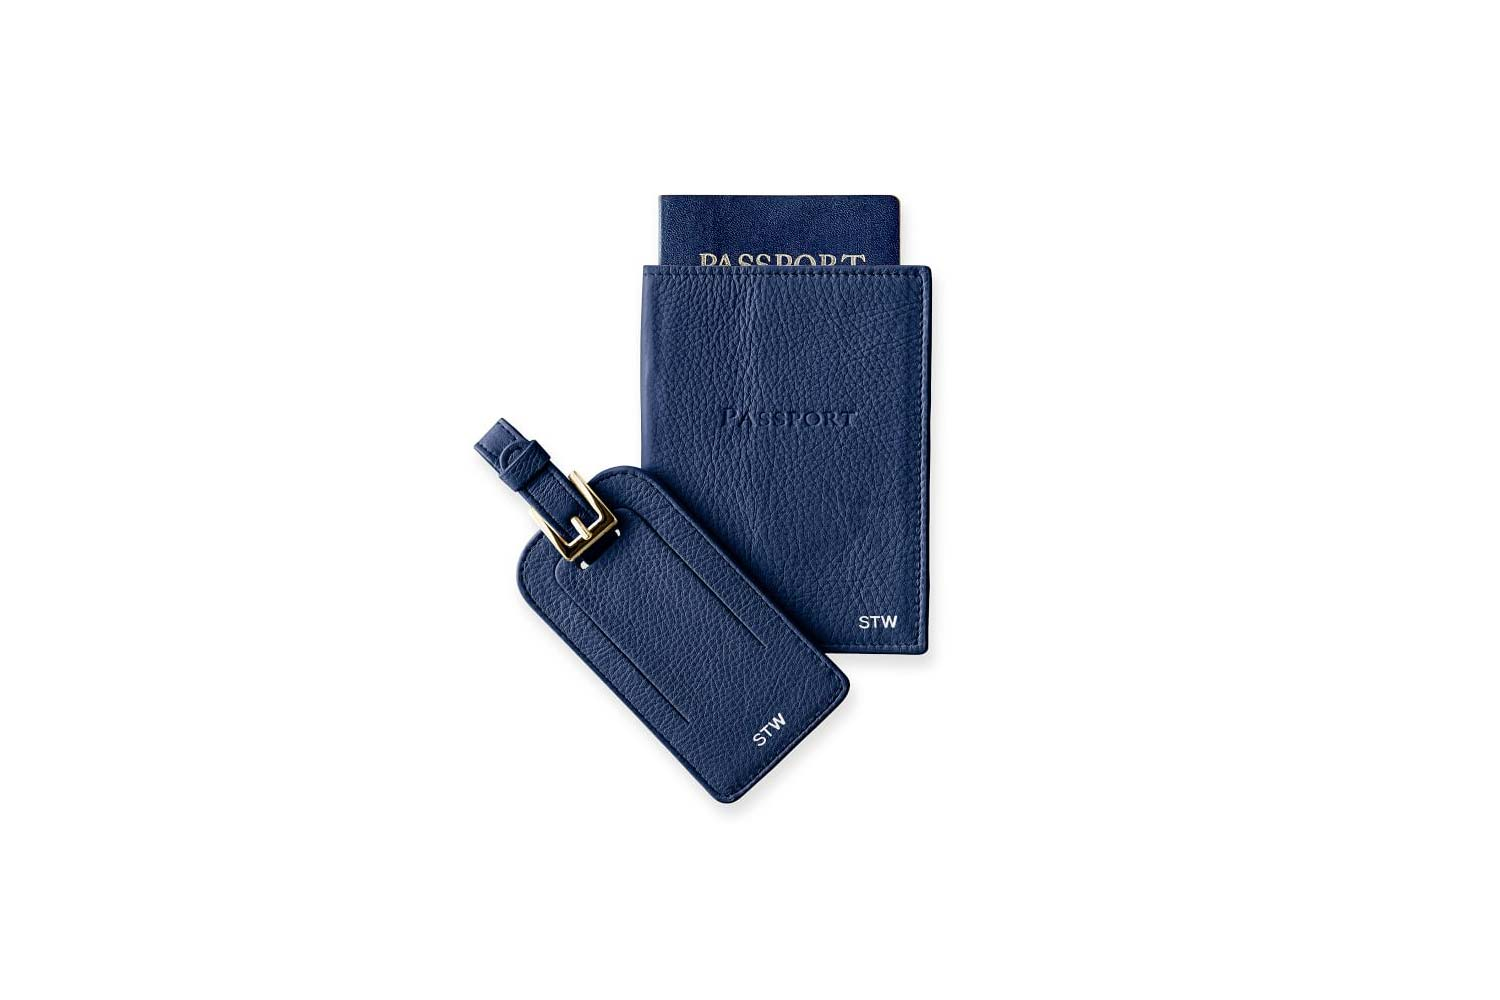 Leather Luggage Tag & Passport Case Set